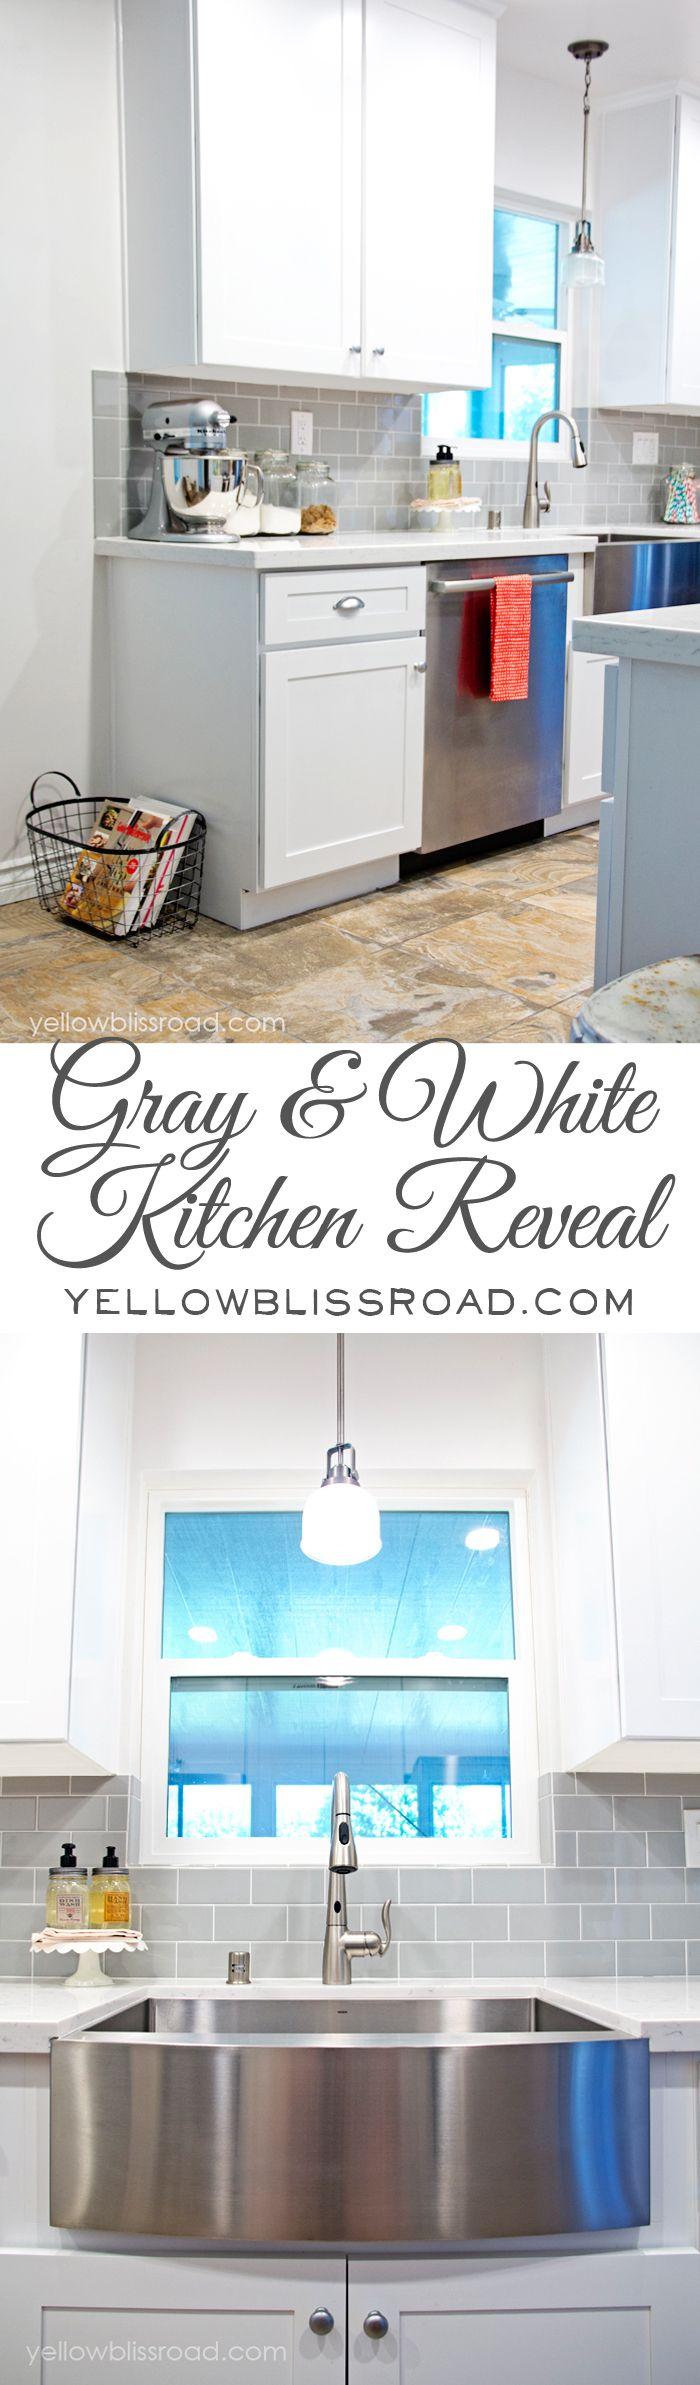 Gray and White Kitchen Reveal on Yellow Bliss Road - LOVE this gorgeous kitchen!